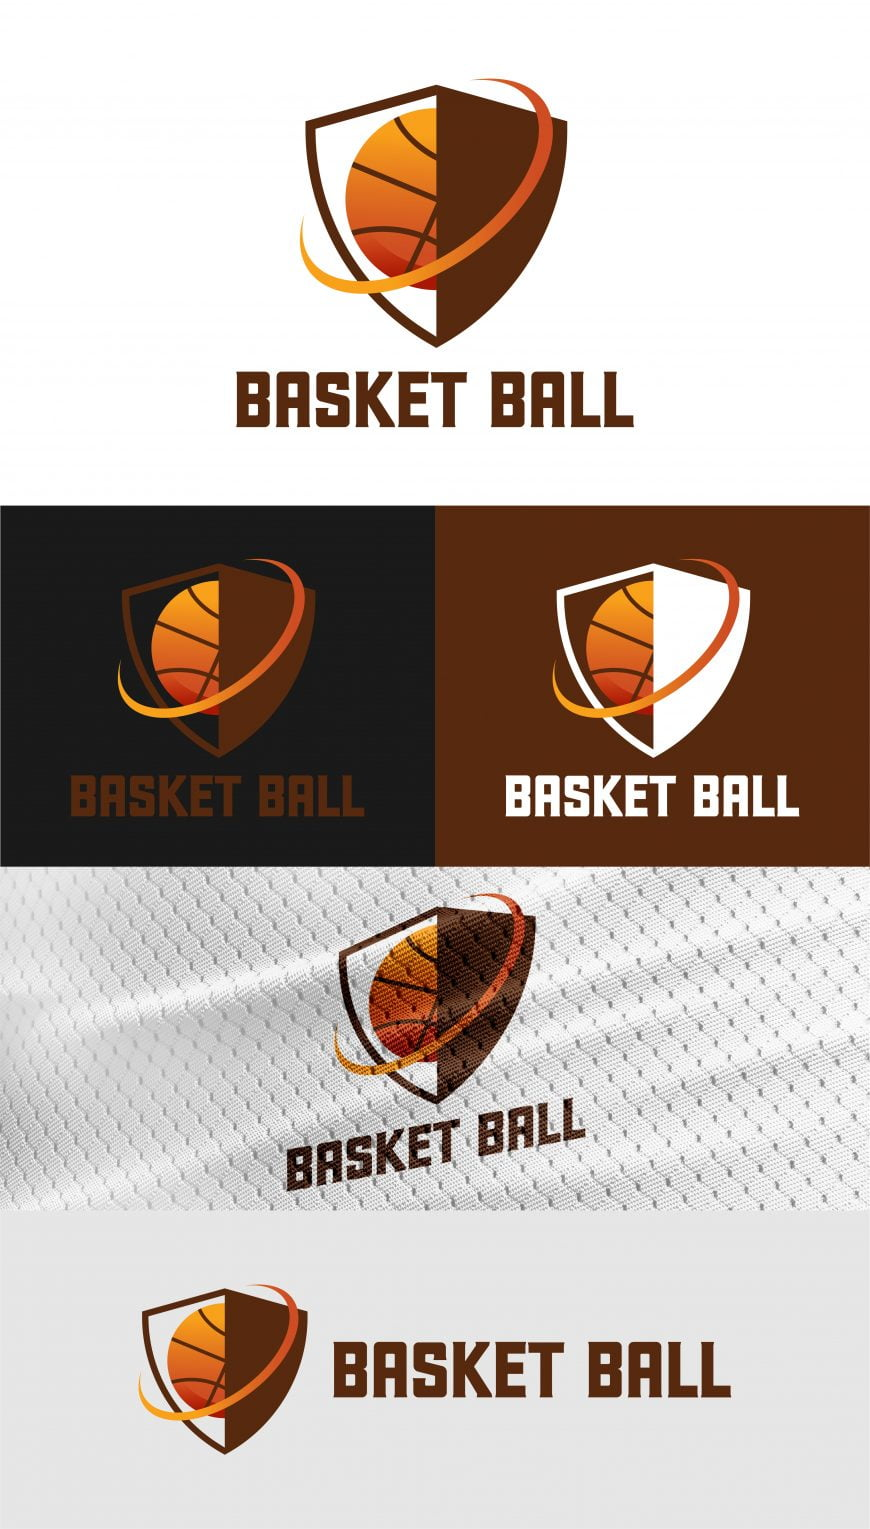 BASKETBALL-LOGO-TEMPLATE-scaled